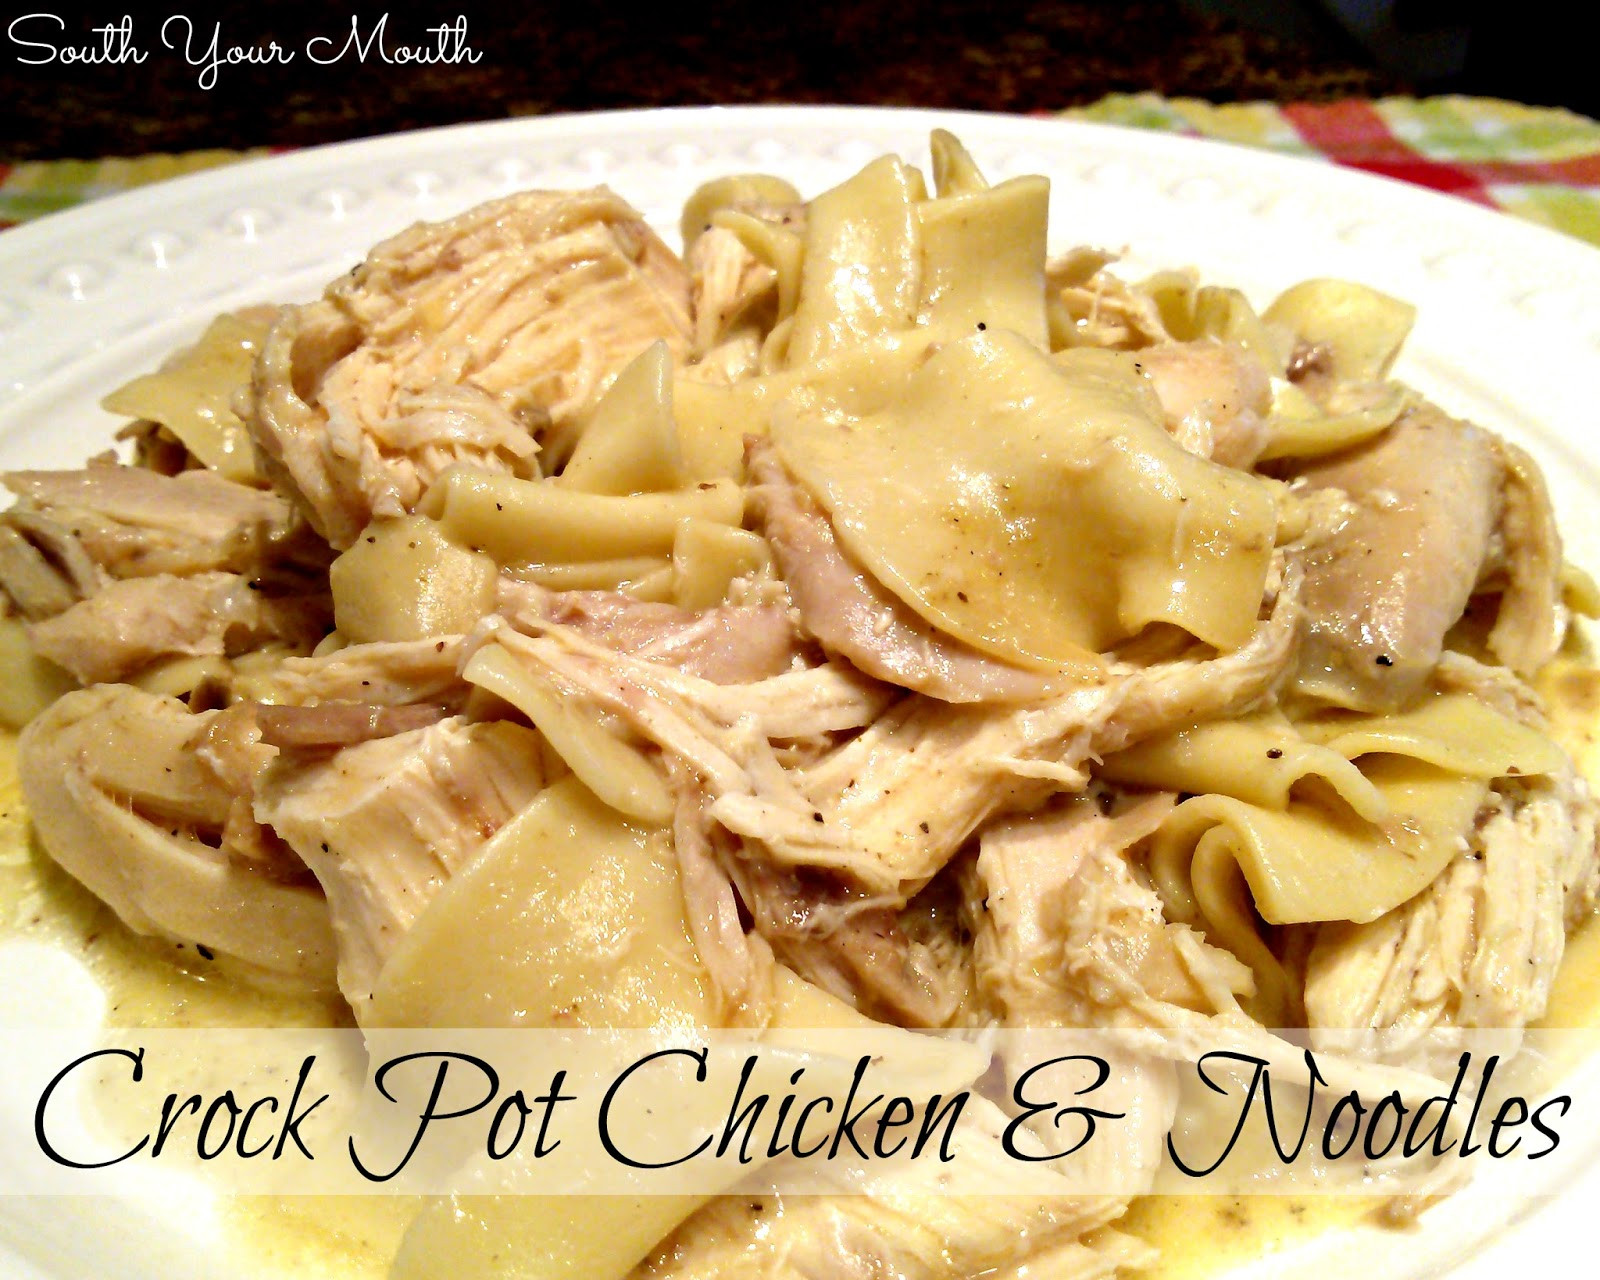 Chicken And Noodles Crock Pot  South Your Mouth Crock Pot Chicken and Noodles